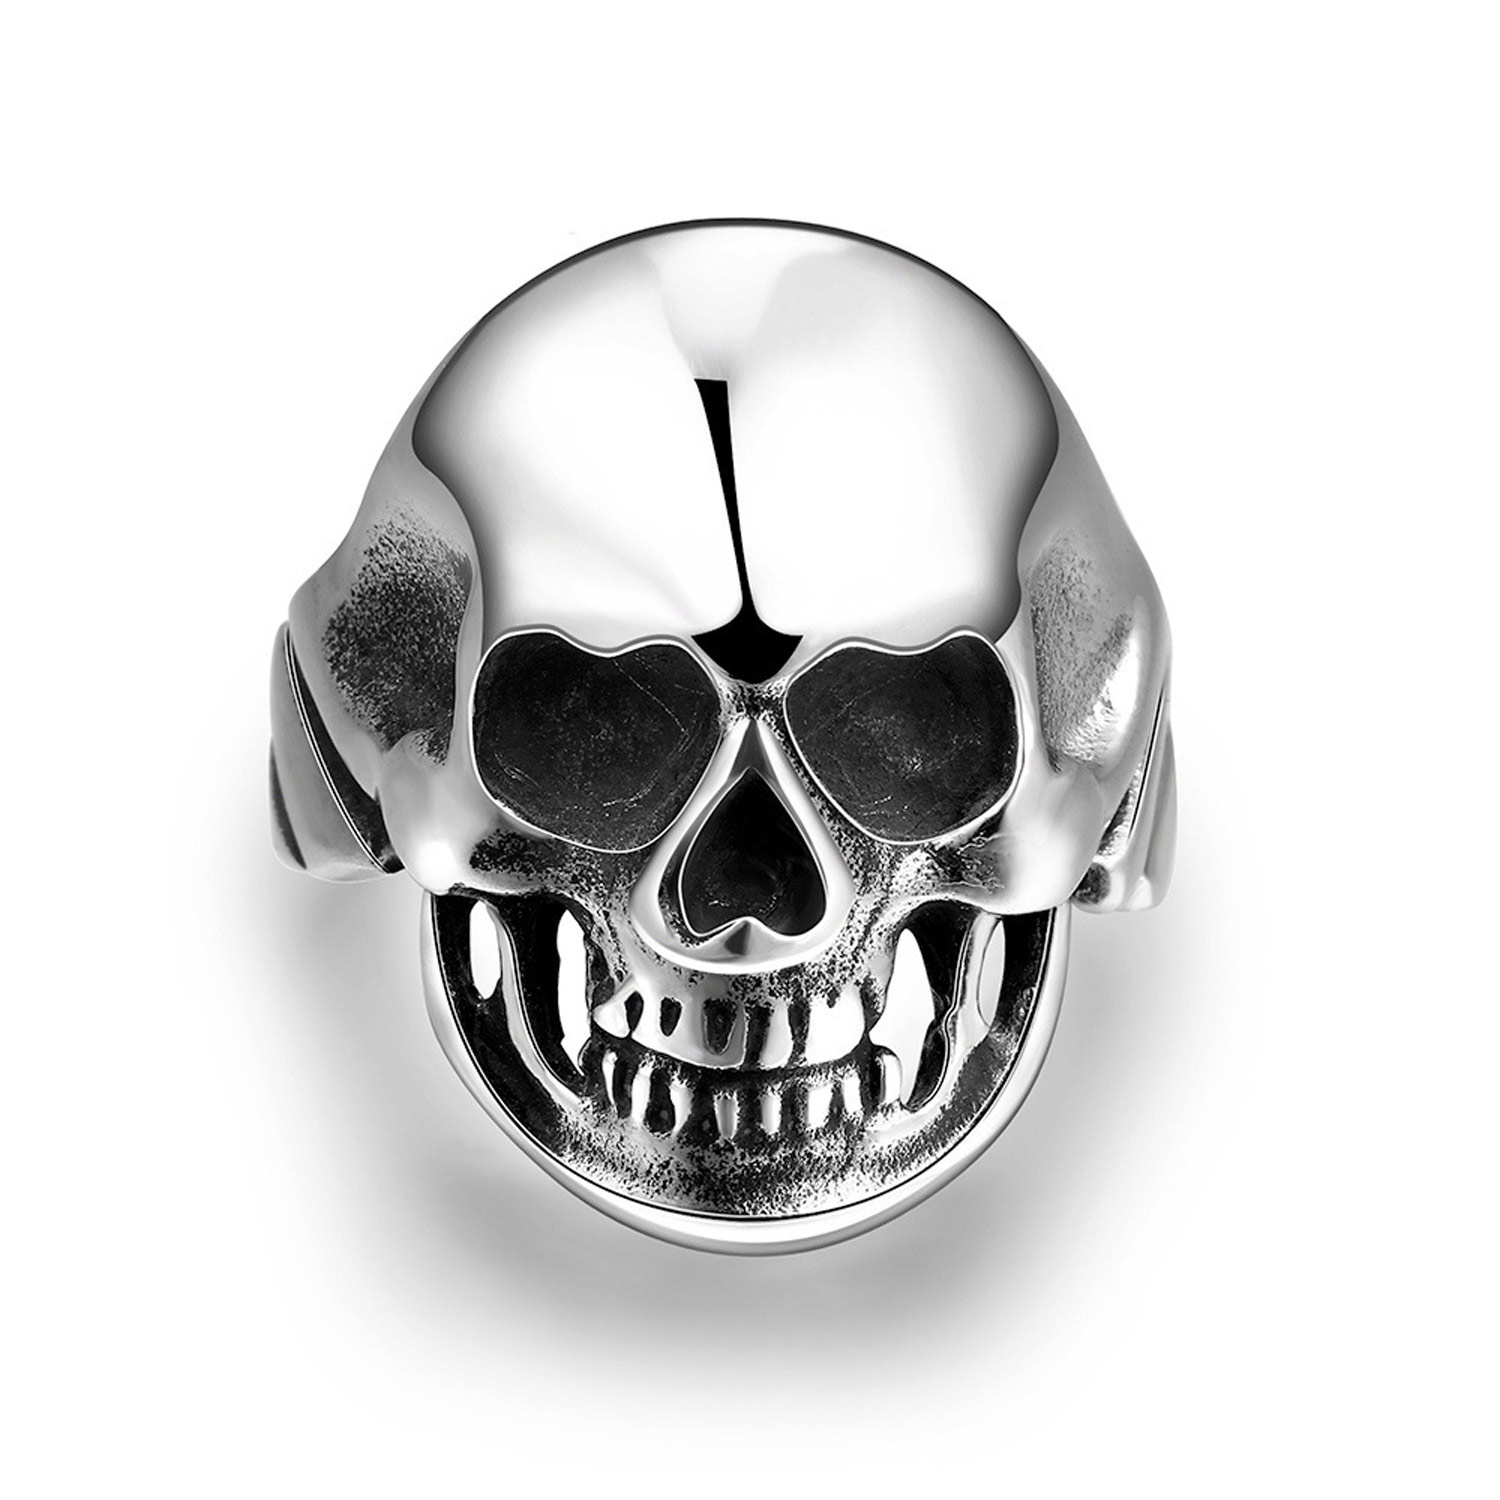 Hot Sale Vintage Ring Creative Skull Head Men's Jewelry Featured Image